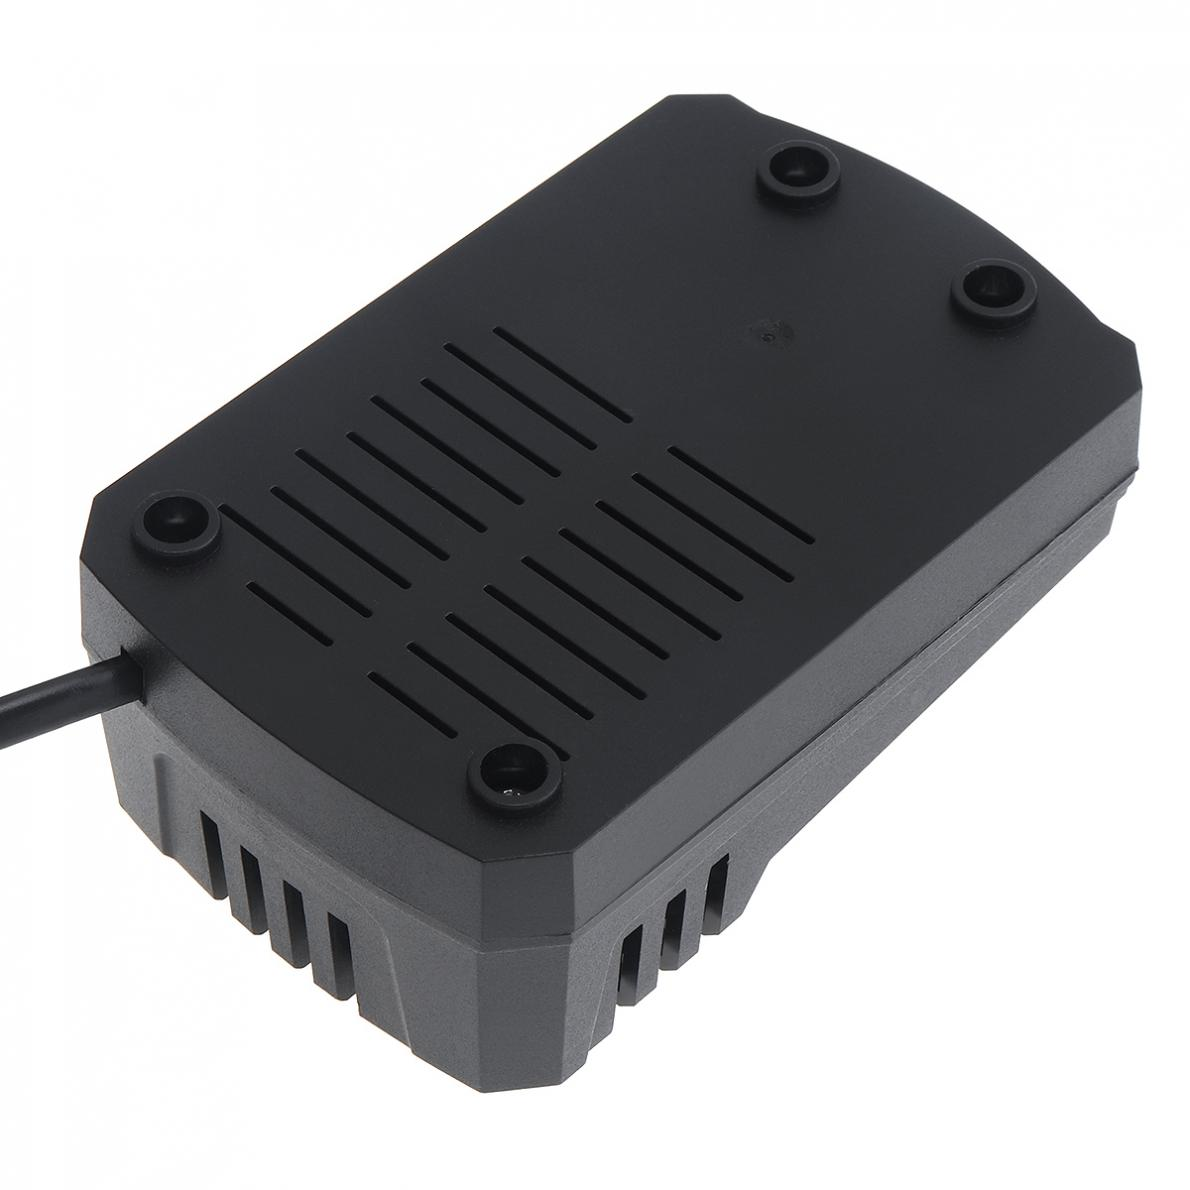 100cm Durable 12V DC Portable Multifunction Li-ion Rechargeable Adapter Support 100-240V Power Source